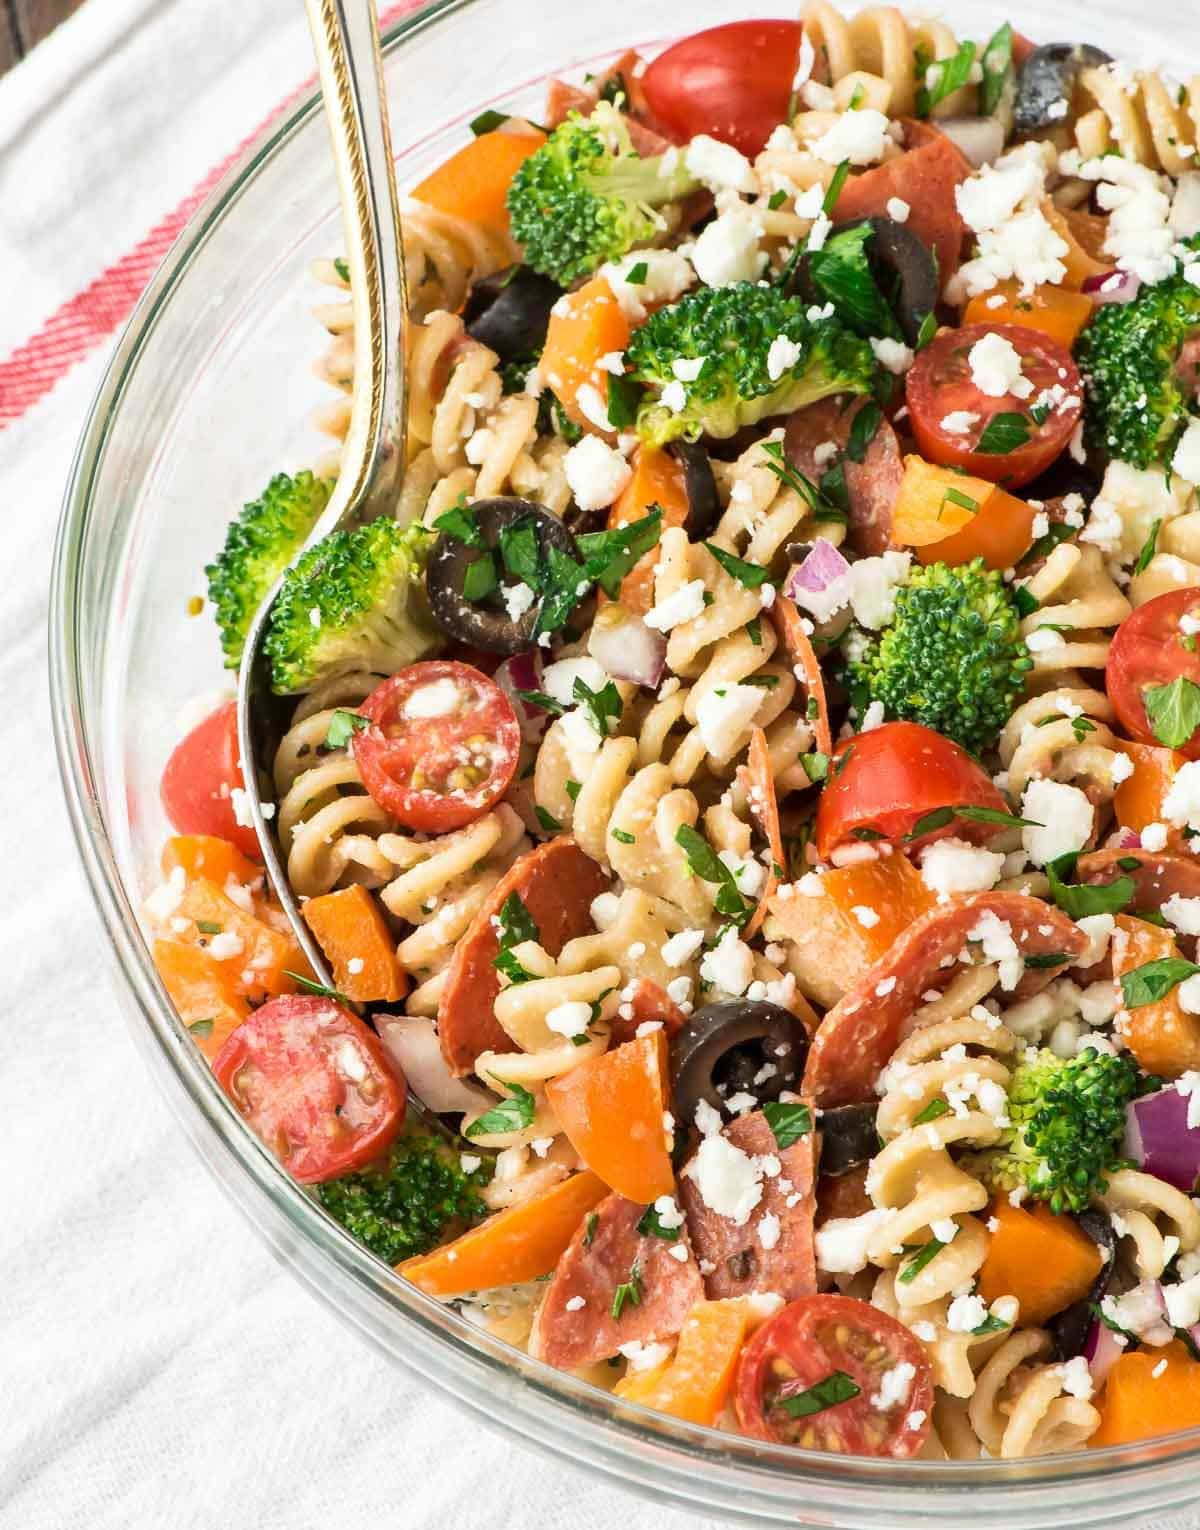 Healthy Cold Pasta Salad  Asian Noodle Salad with Creamy Peanut Dressing